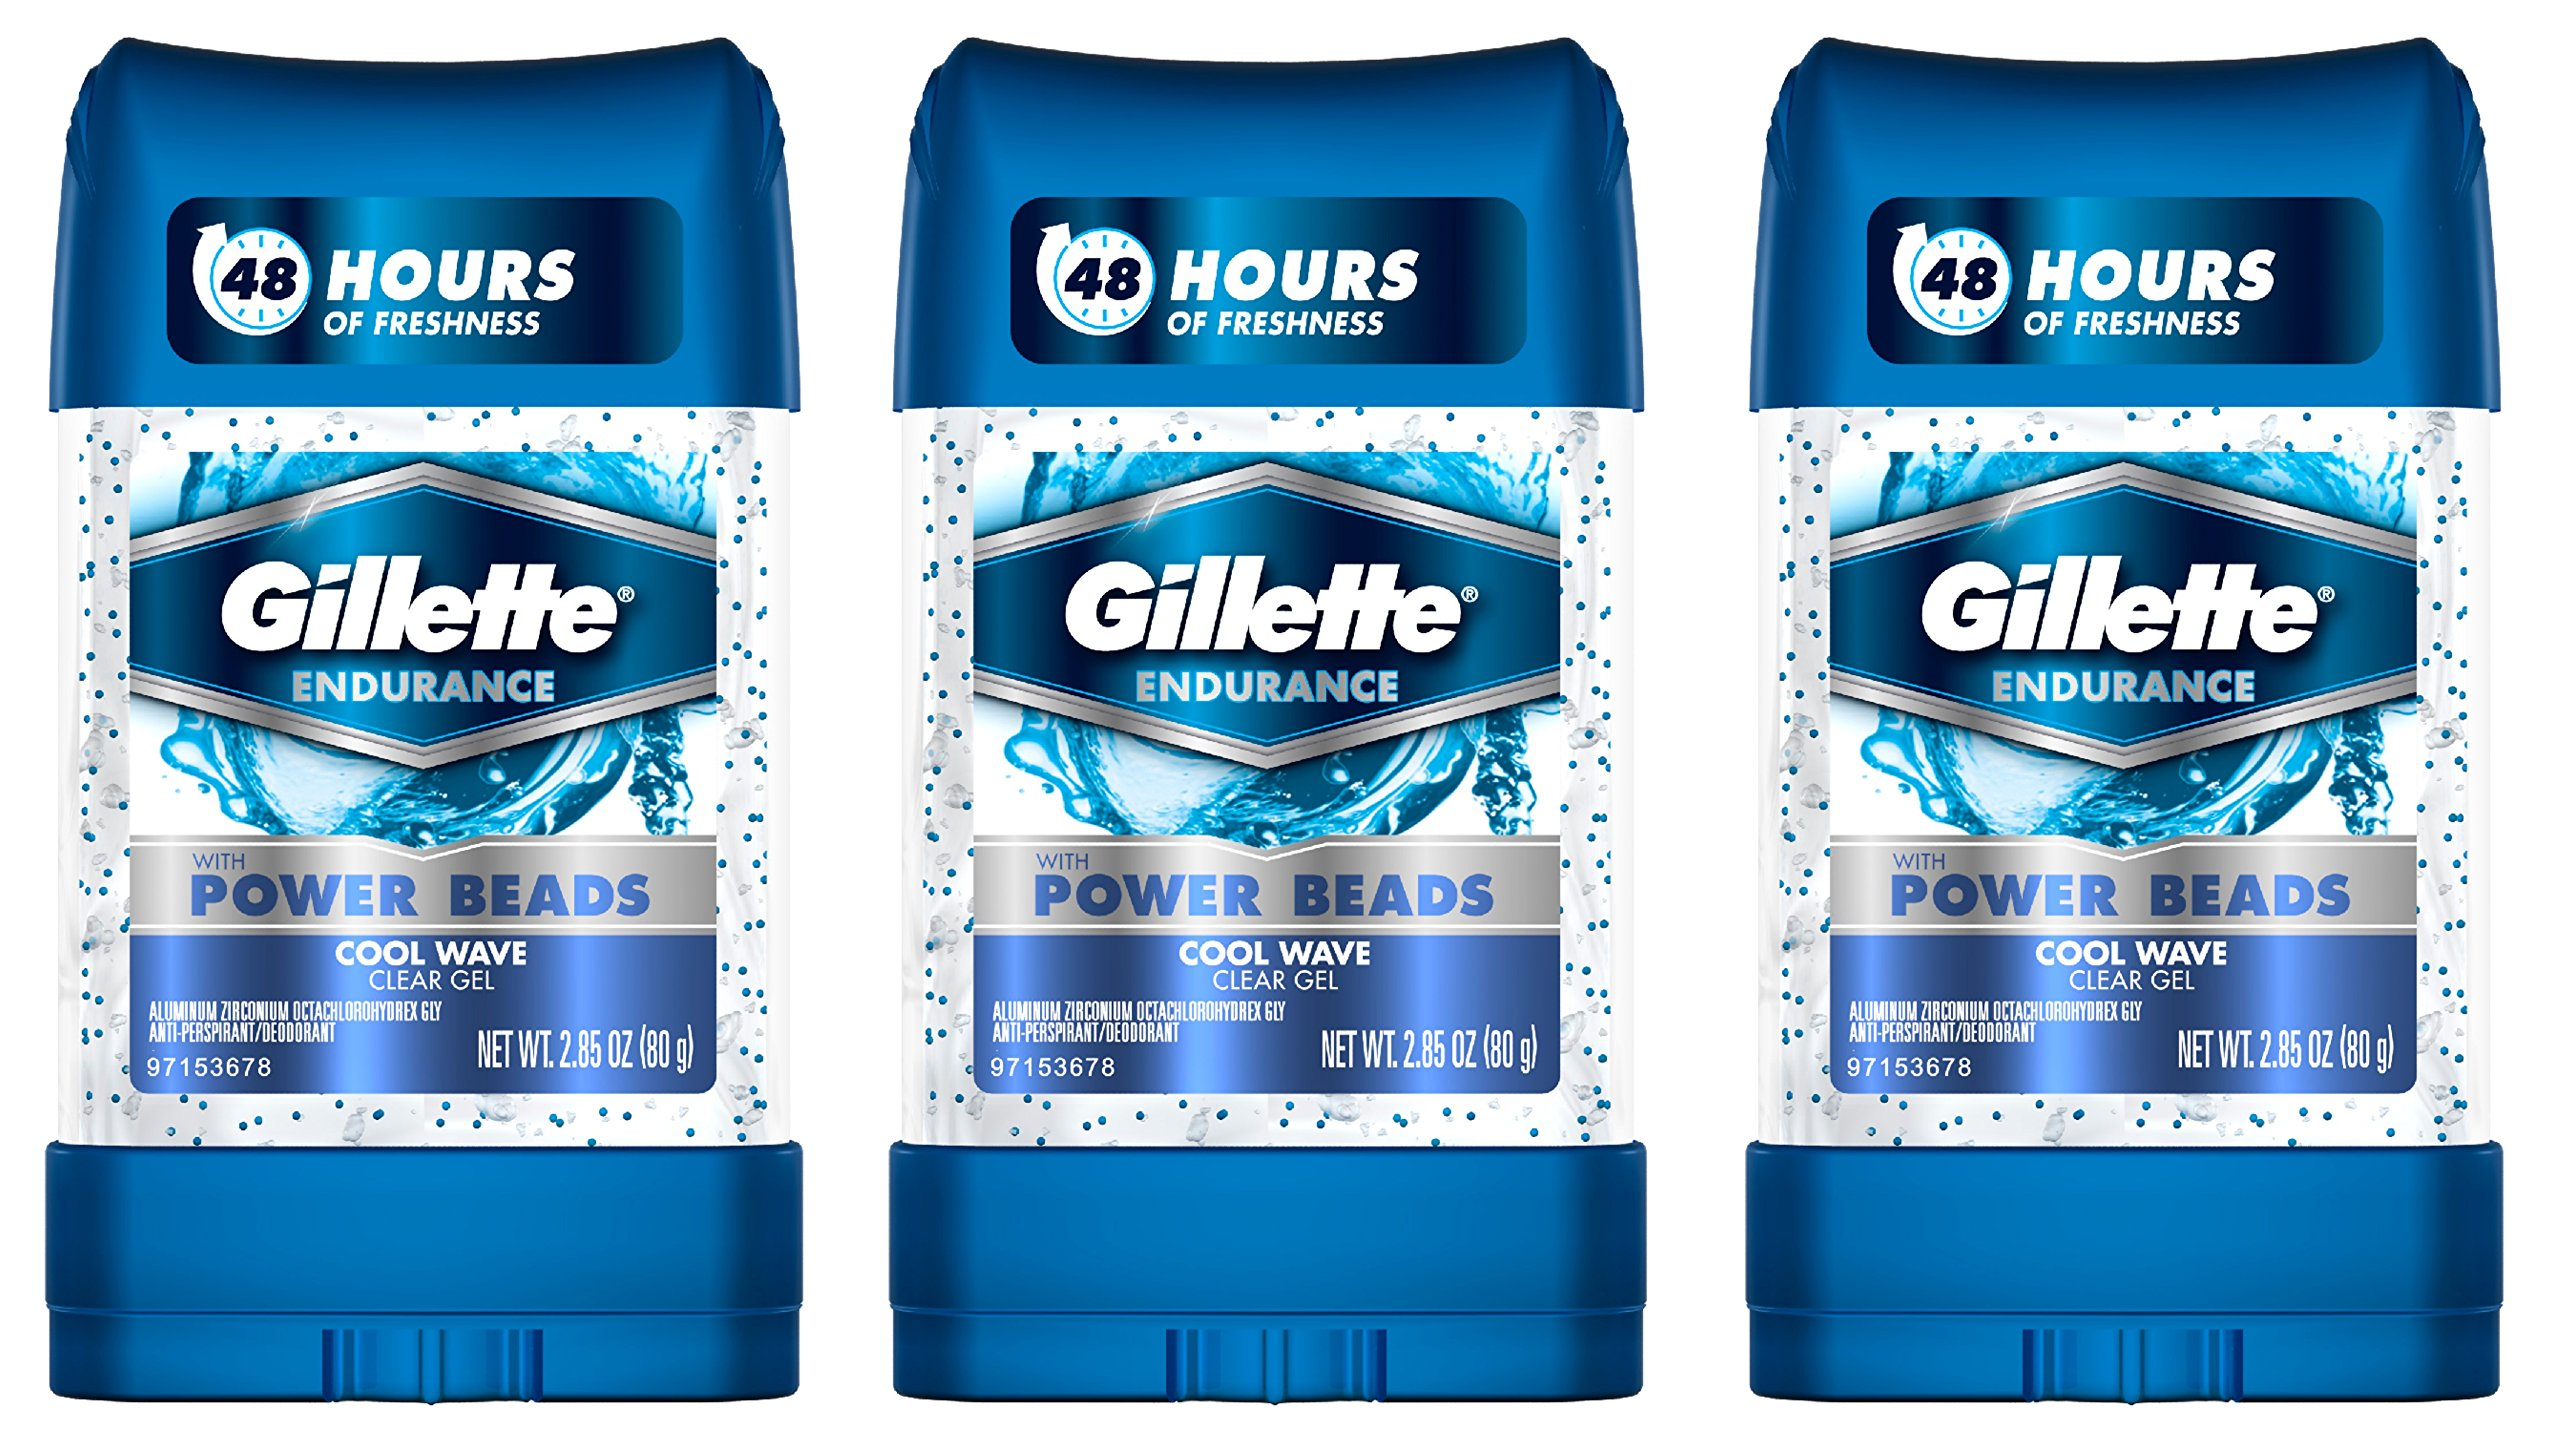 Gillette Clear Gel Power Beads Cool Wave Antiperspirant and Deodorant, 2.85 oz (pack of 3) by Gillette (Image #1)